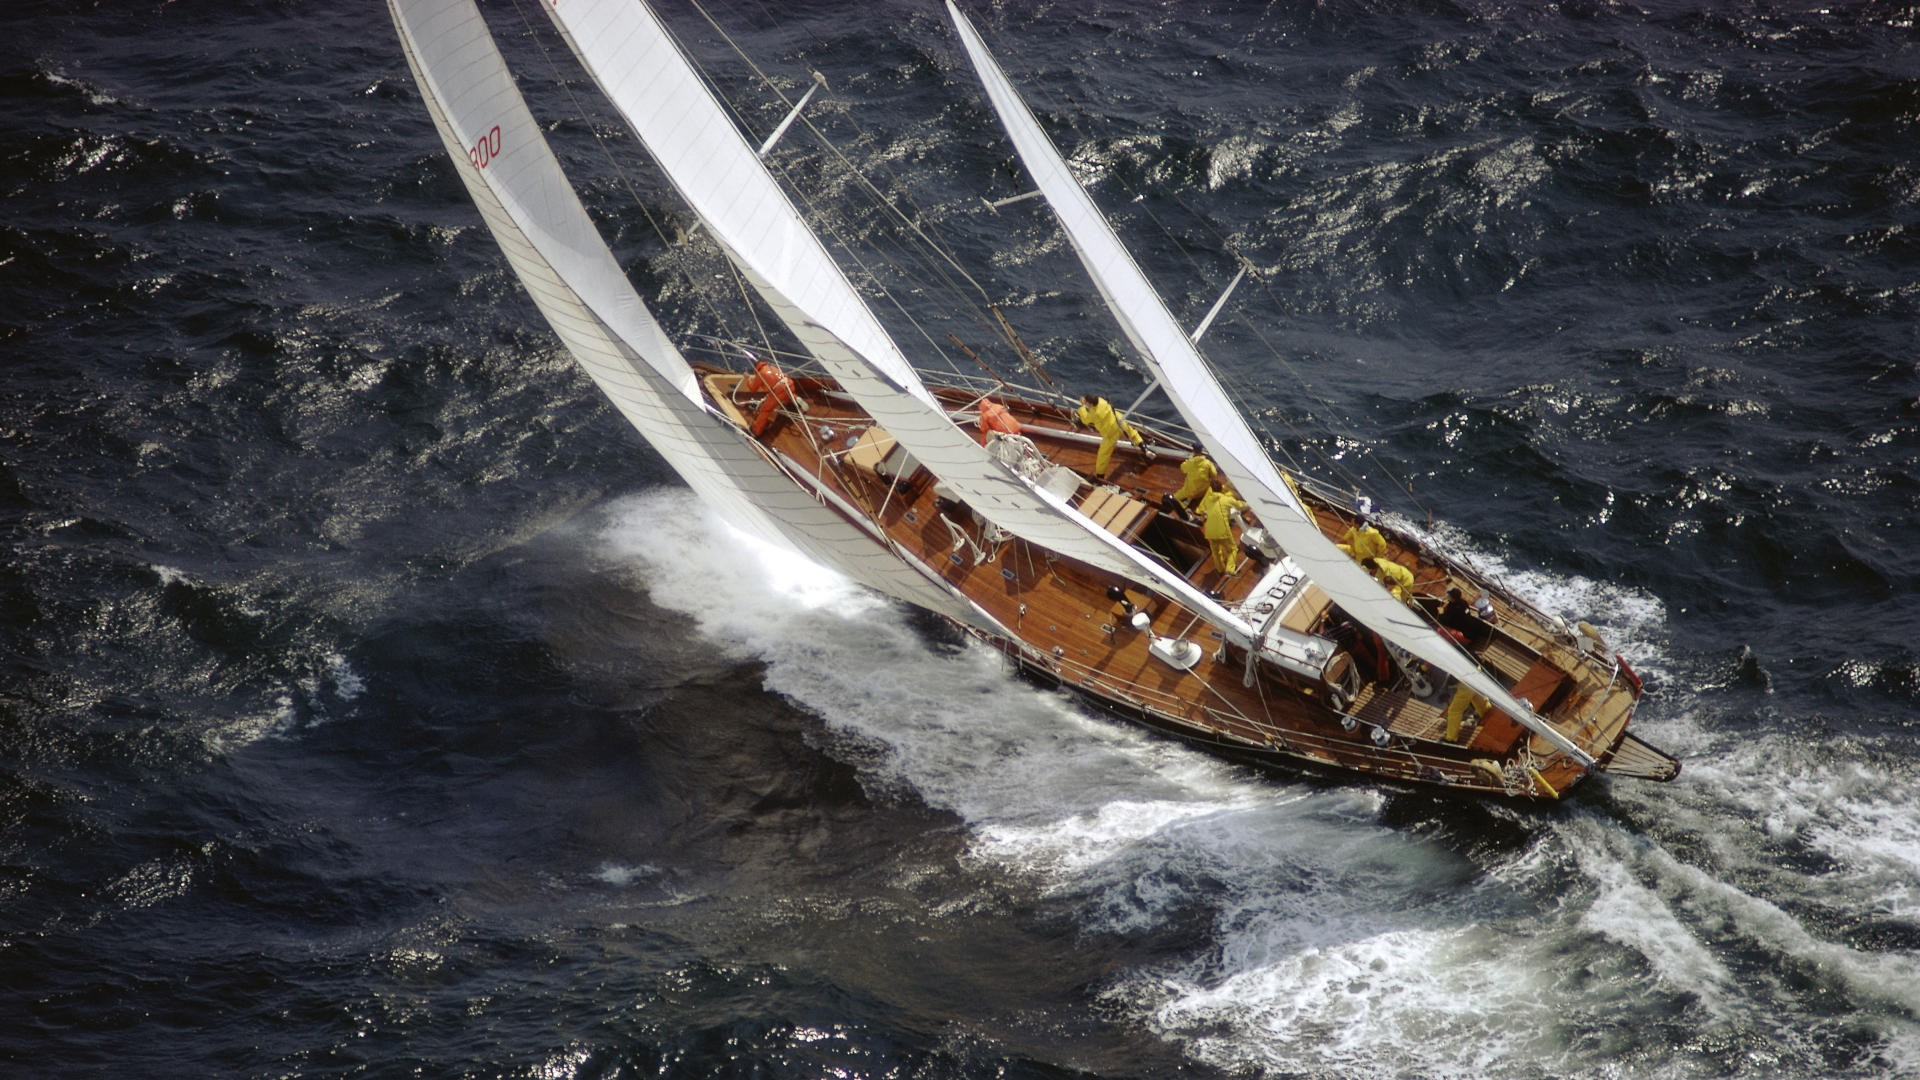 There are older sailing yachts that are much better and have